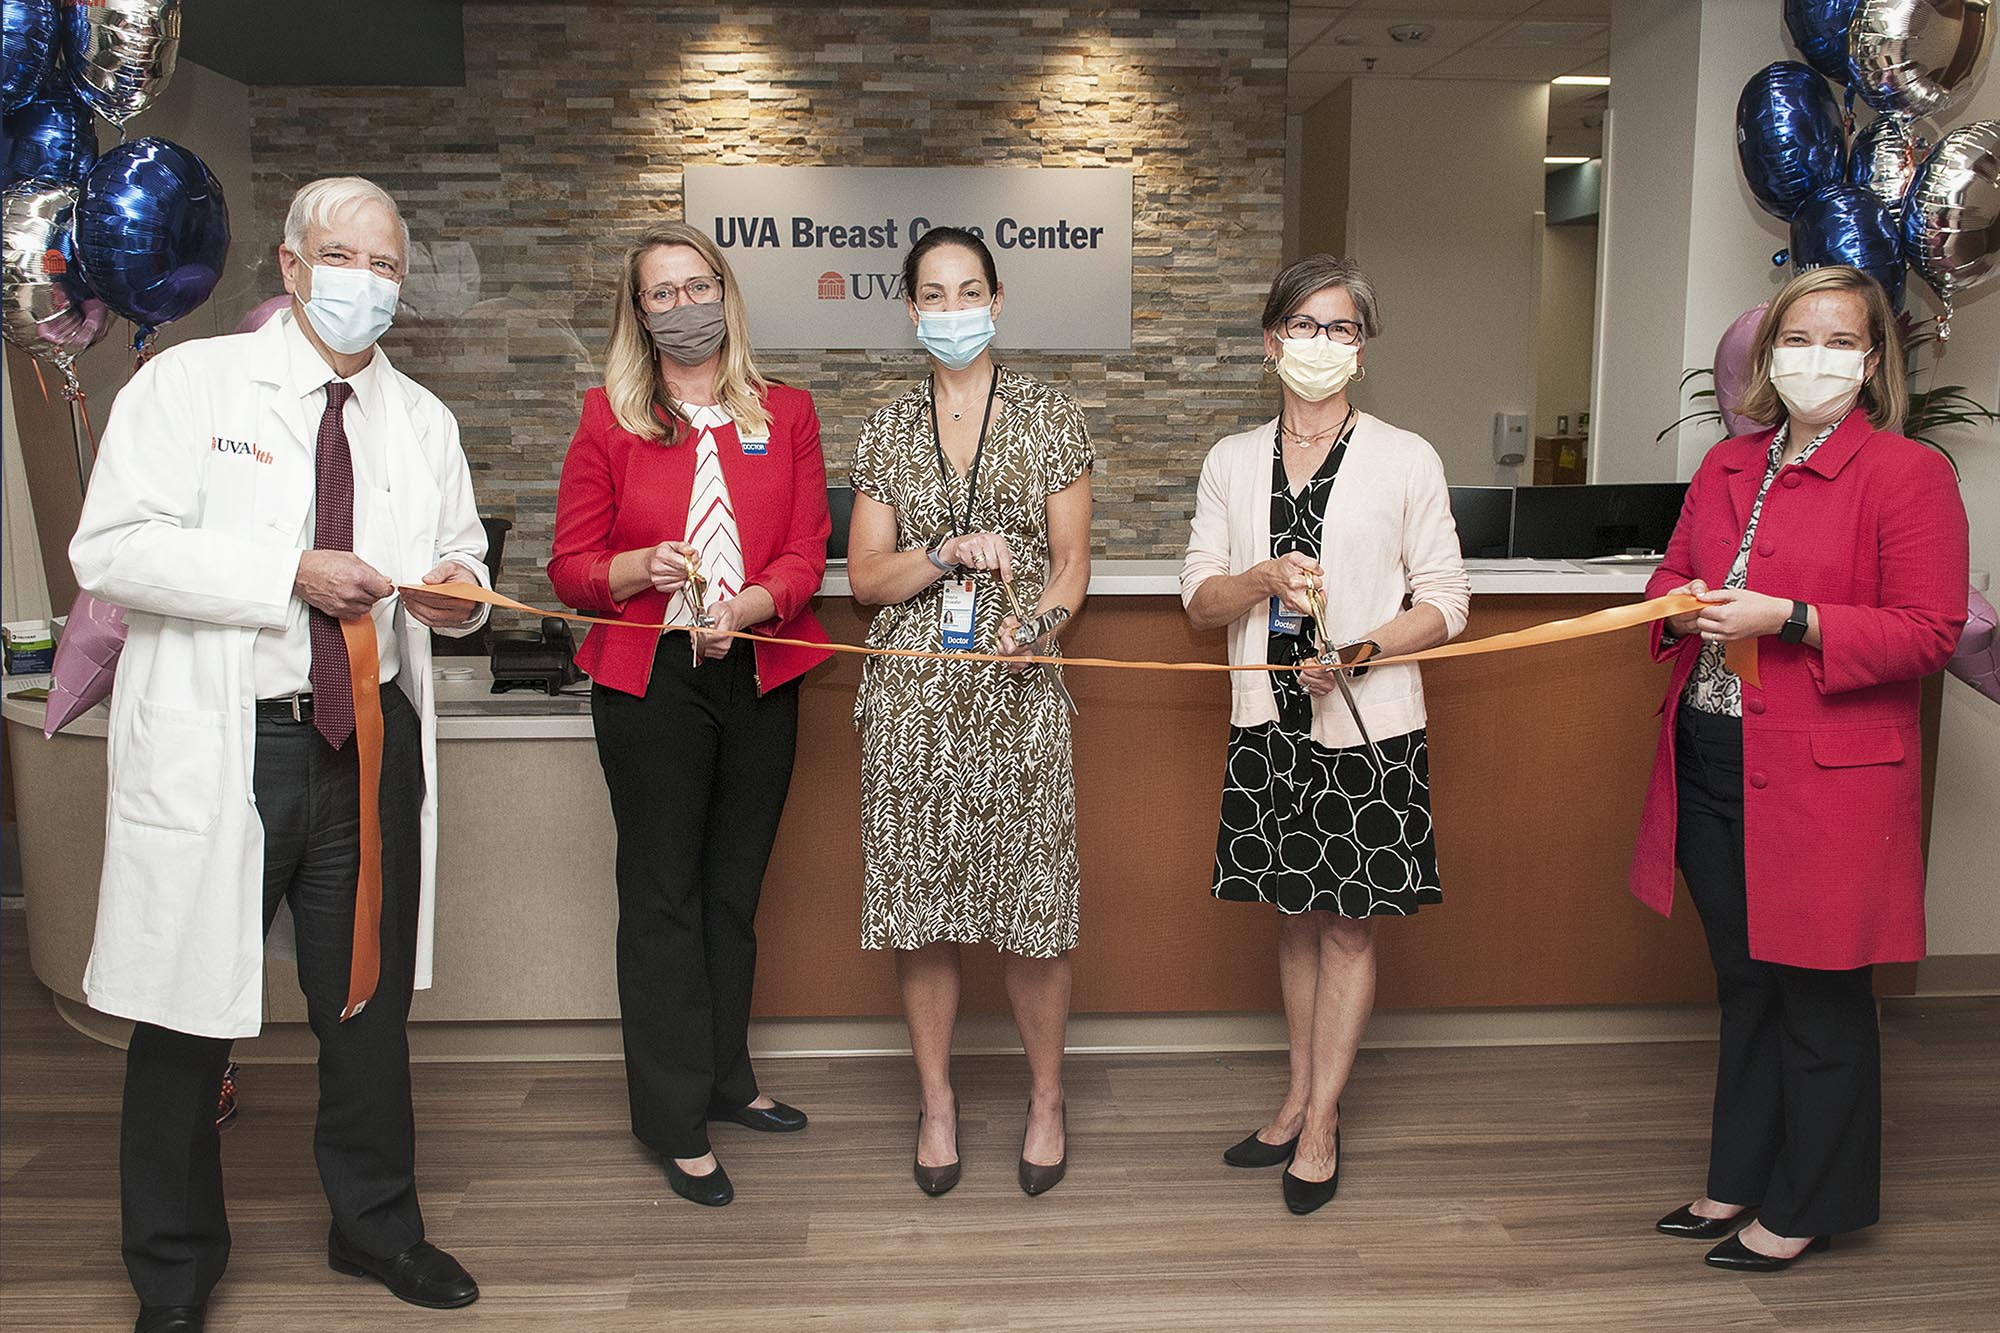 What You Need to Know About UVA's New Breast Care Center